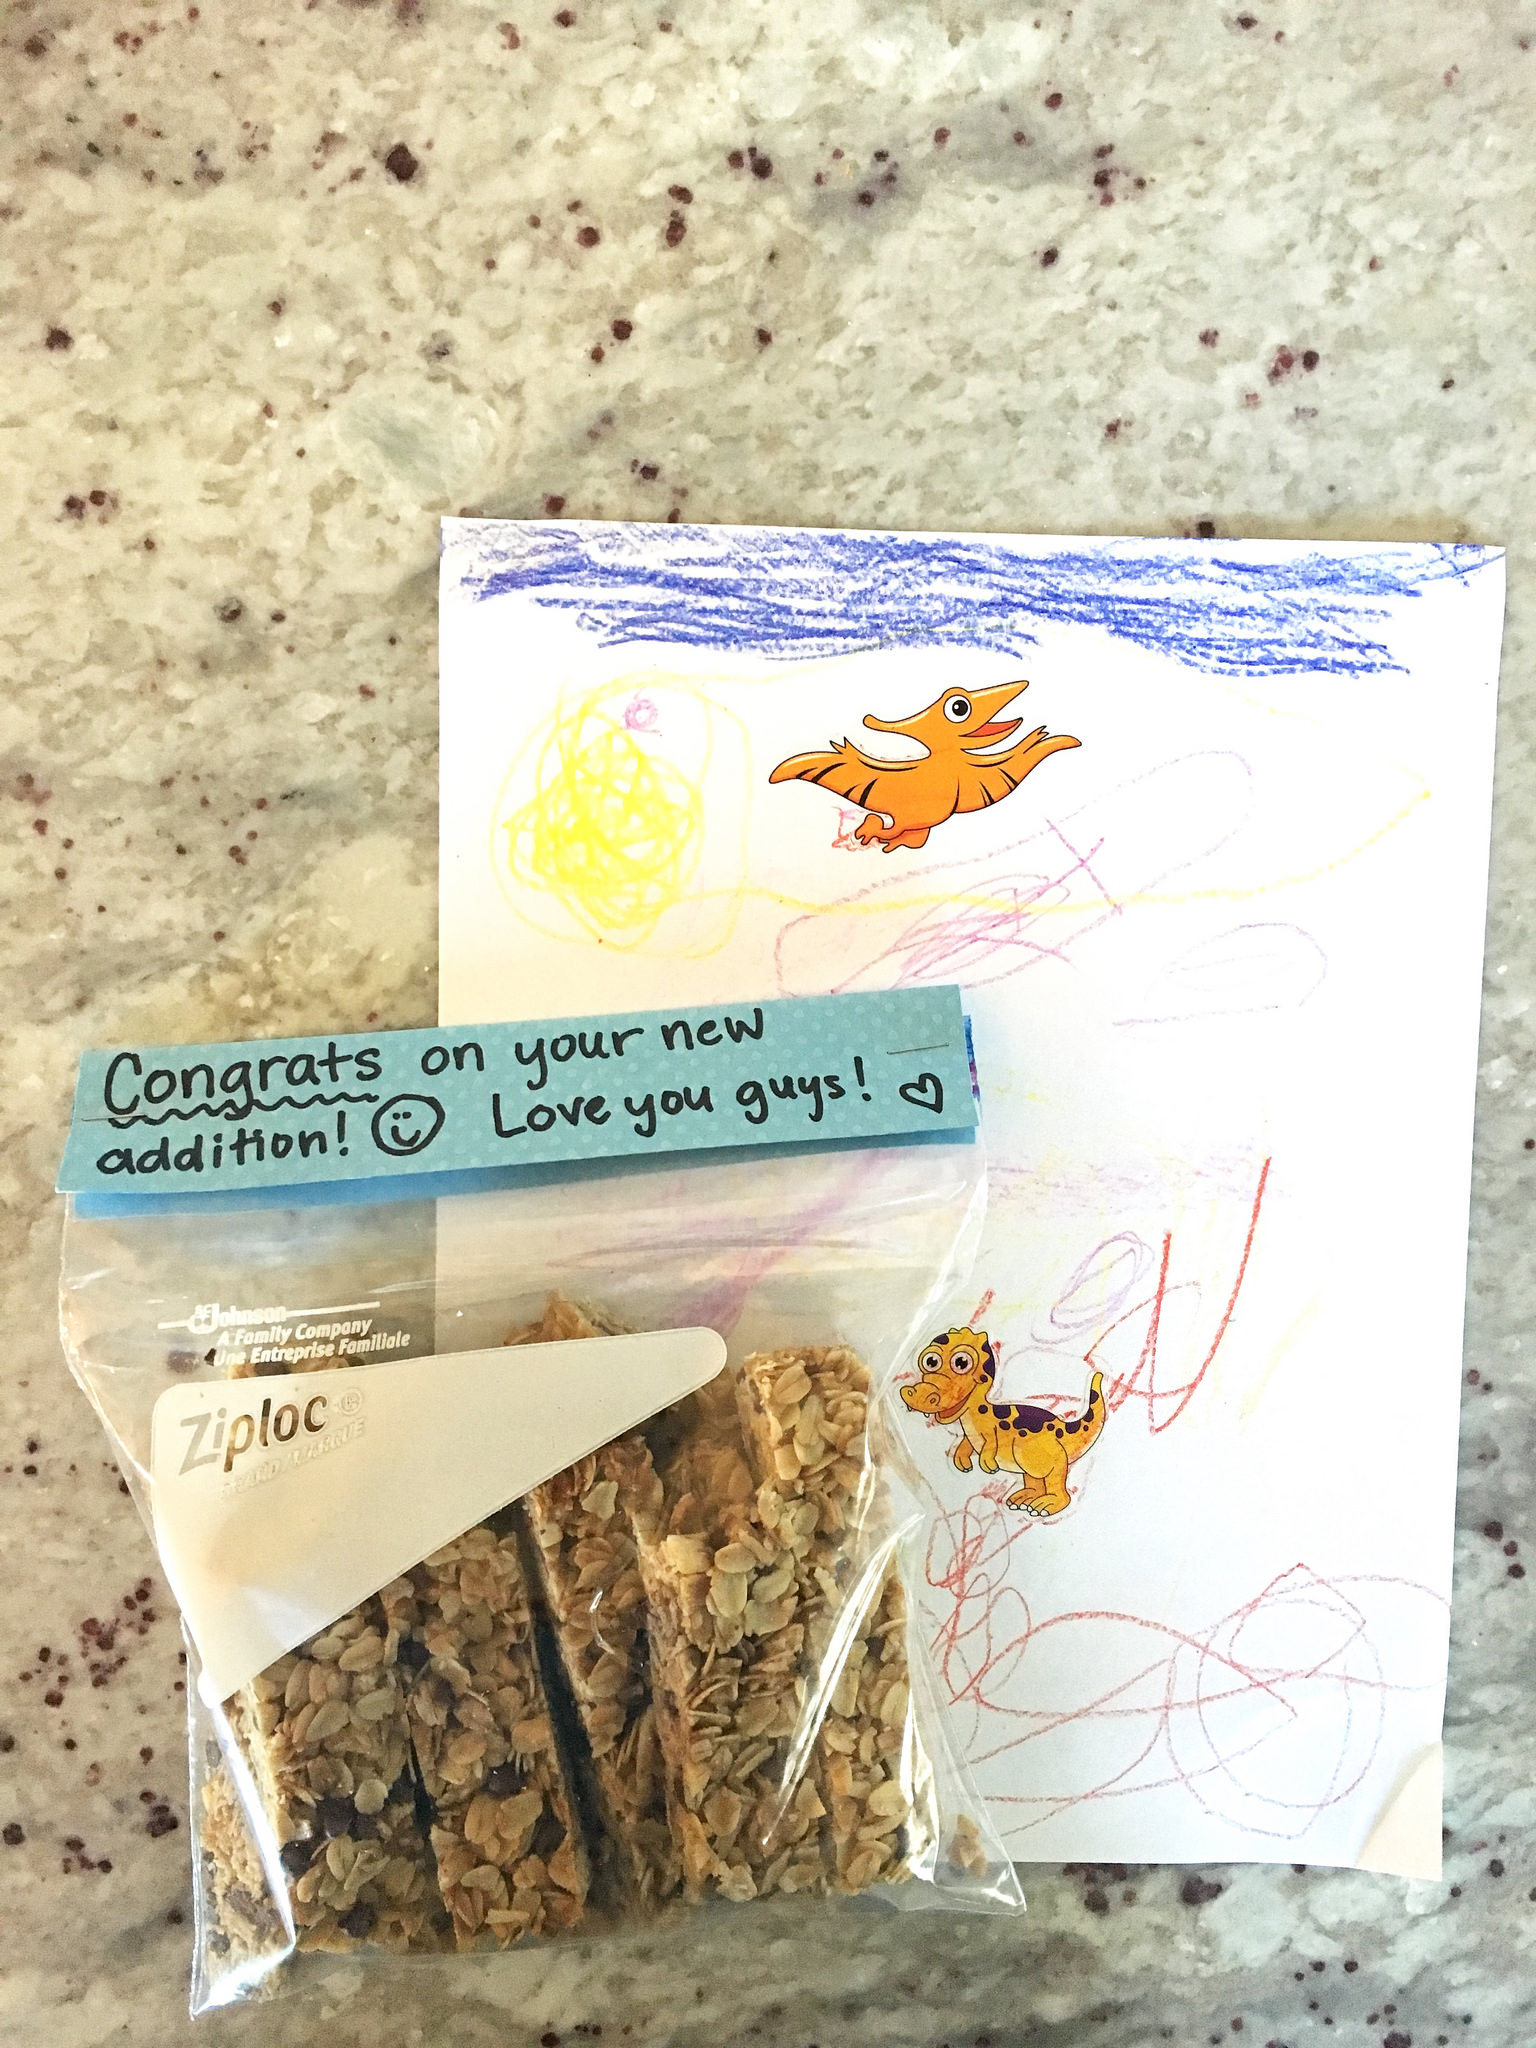 granola bars and a card for friend - kindness antennae